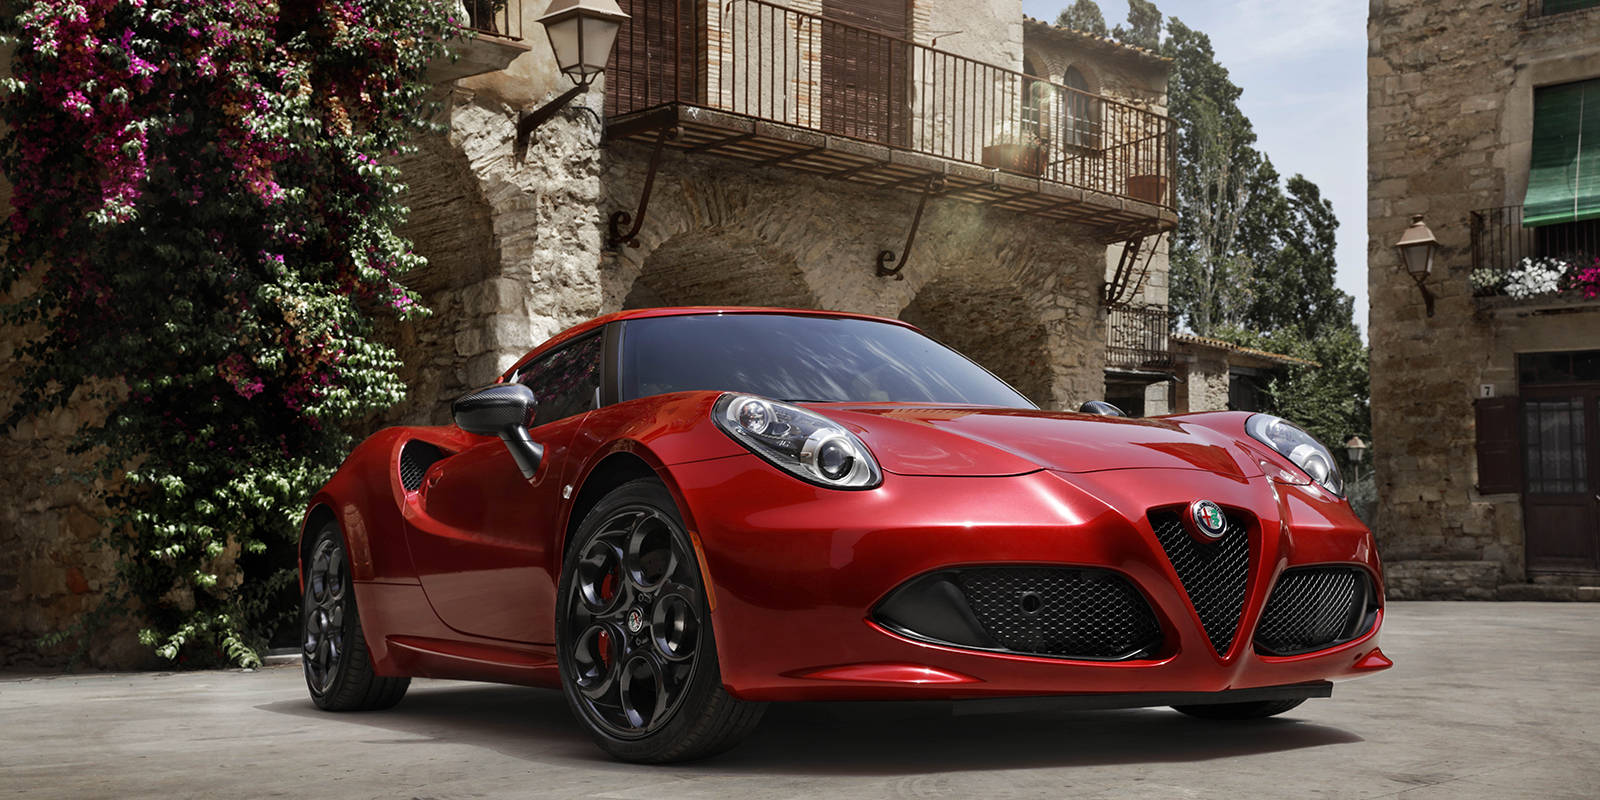 2018 alfa romeo 4c prices in uae gulf specs reviews for dubai abu dhabi and sharjah yallamotor. Black Bedroom Furniture Sets. Home Design Ideas